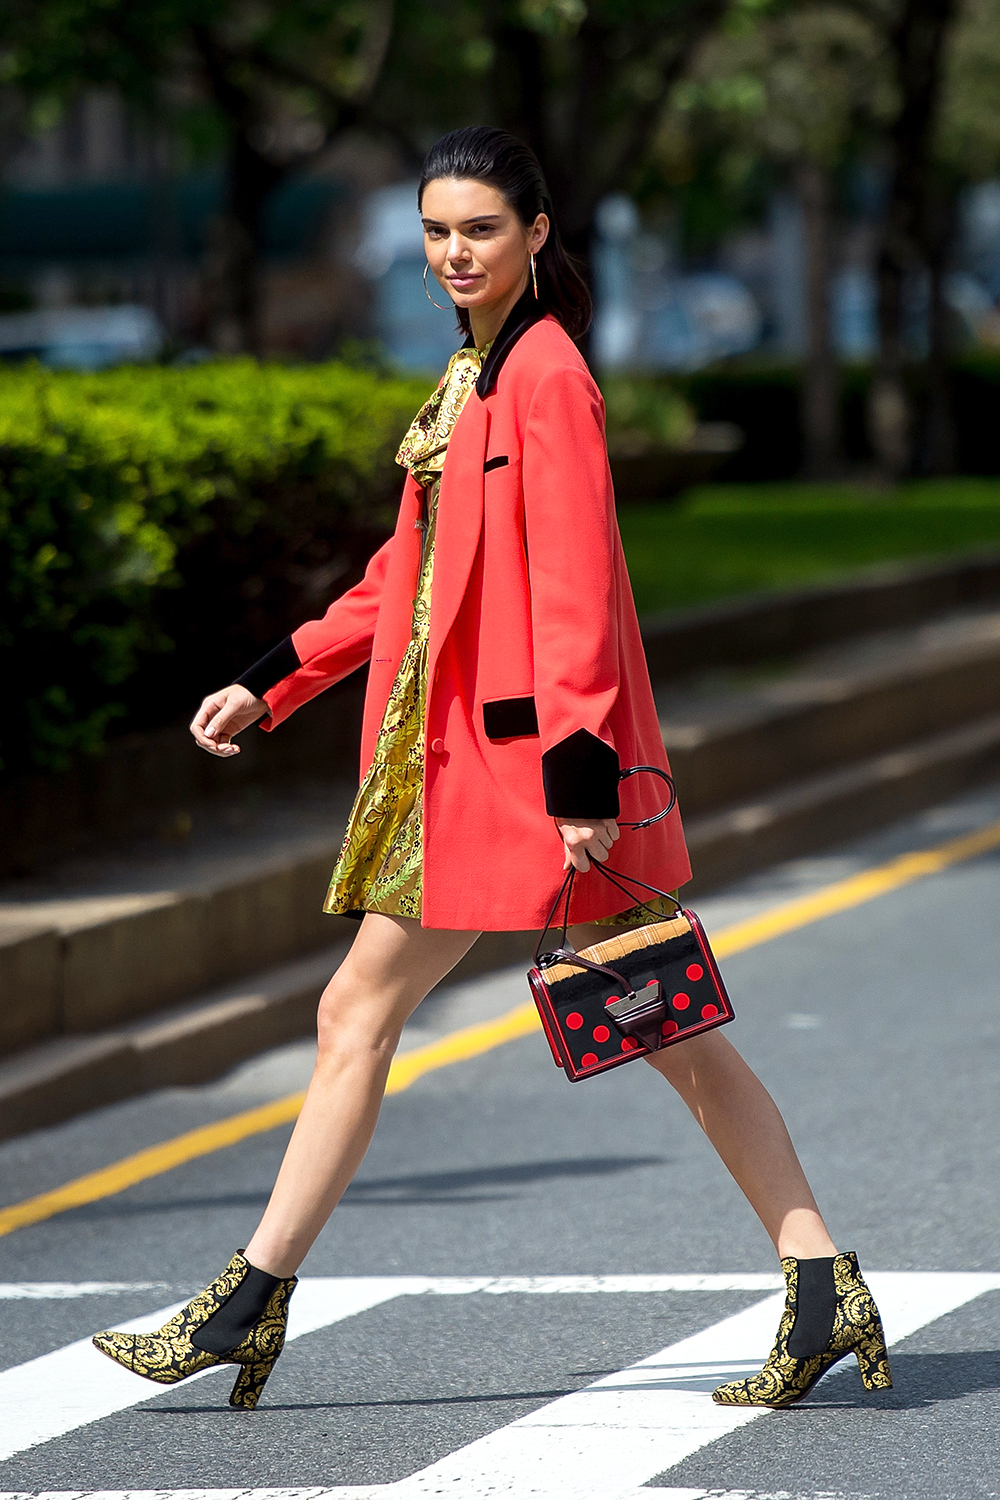 12 Cute Fall Outfits Made For Looking Great In Foliage Fashion